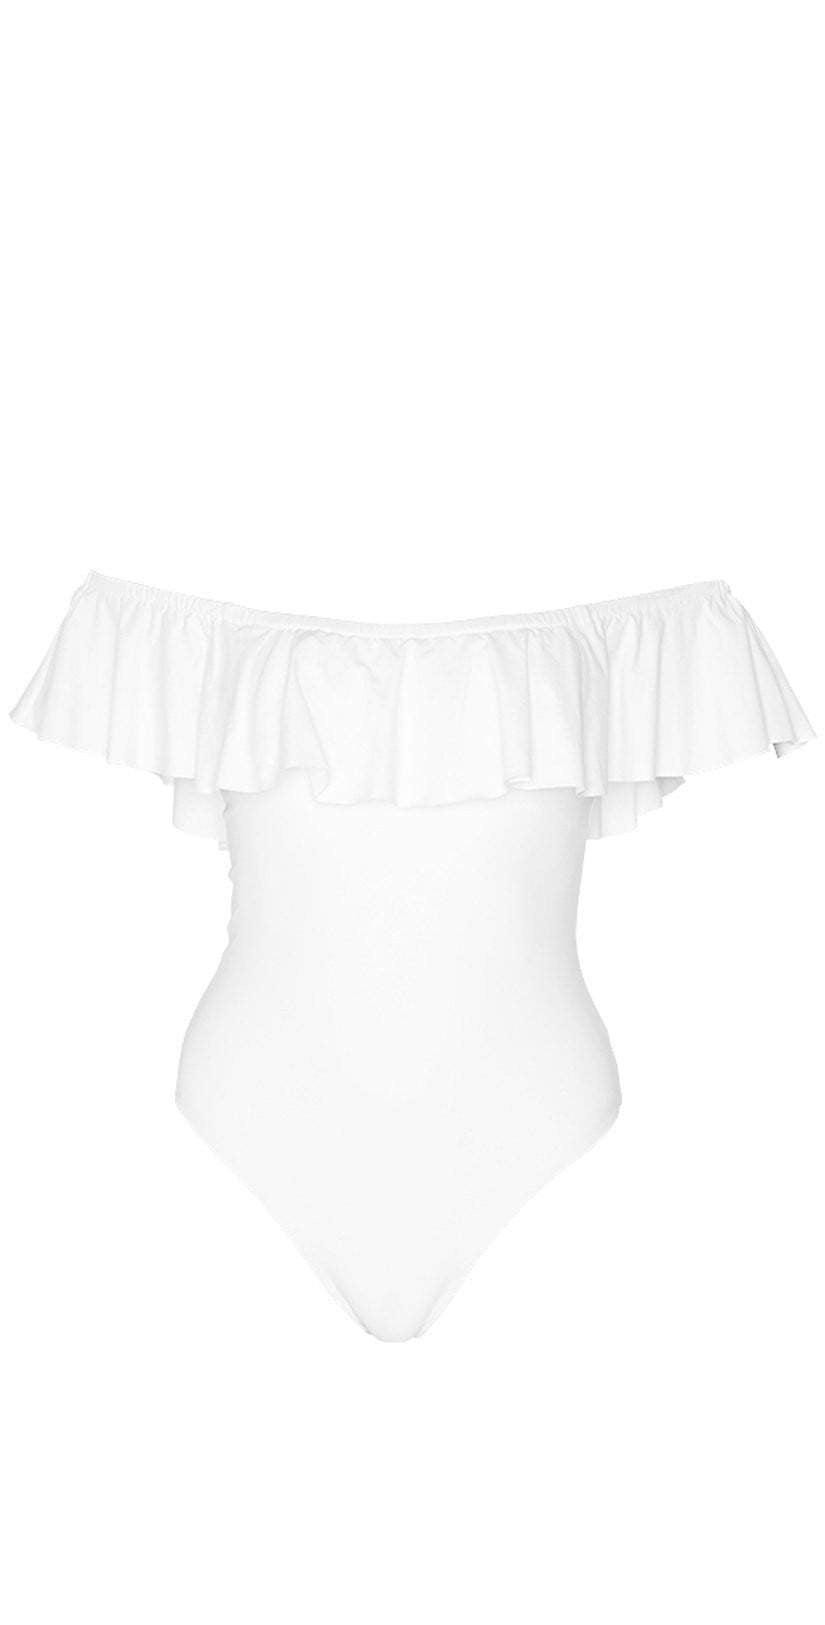 L Space Ruffles Kimora Off Shoulder One Piece in White MTKMM18-WHT flat lay studio